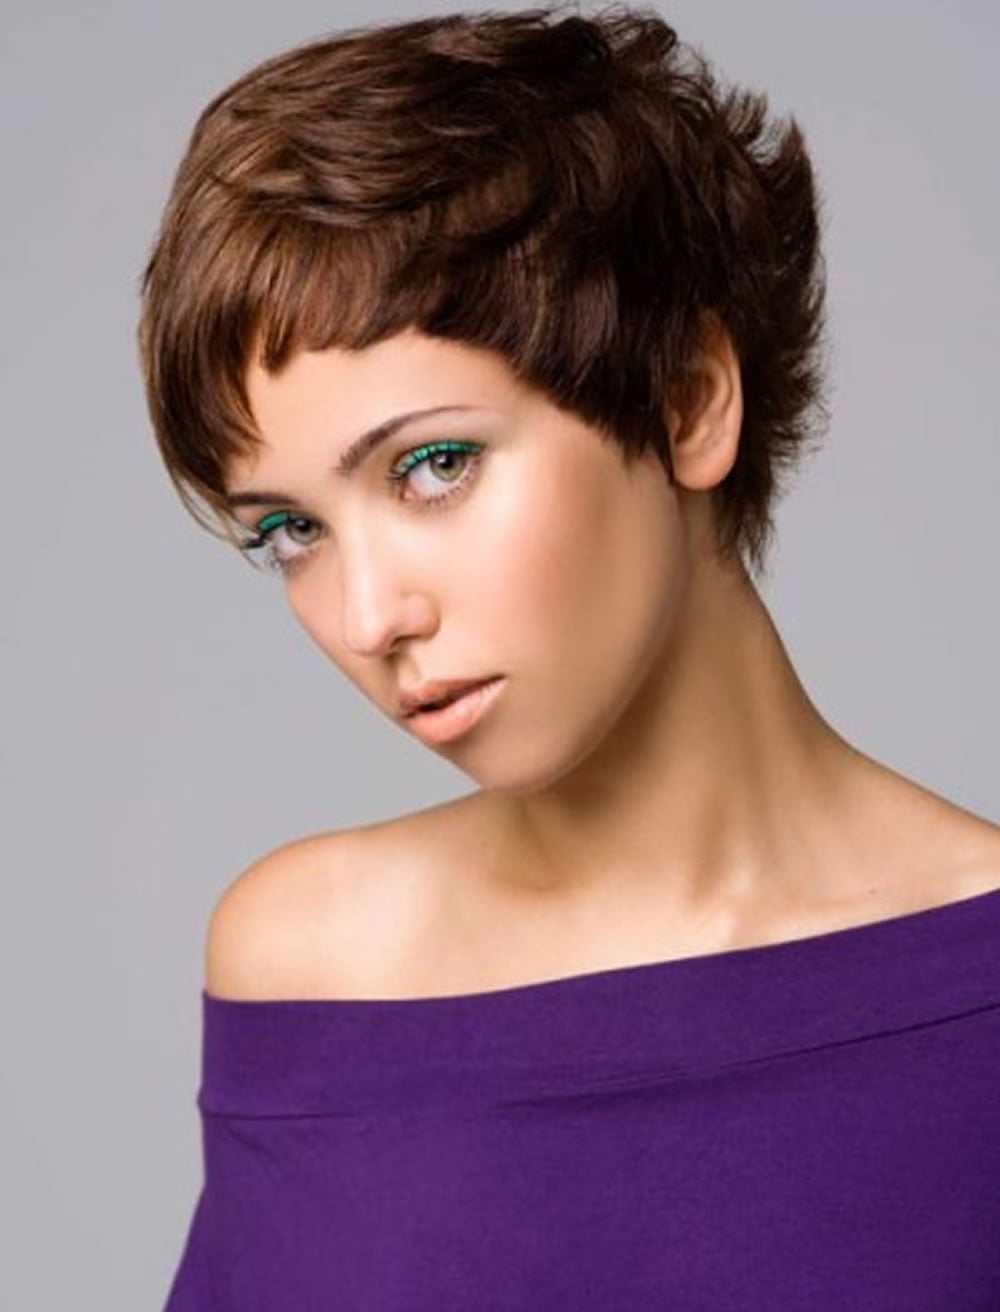 34 Amazing Short Hair Haircuts For Girls 2018 2019 Page